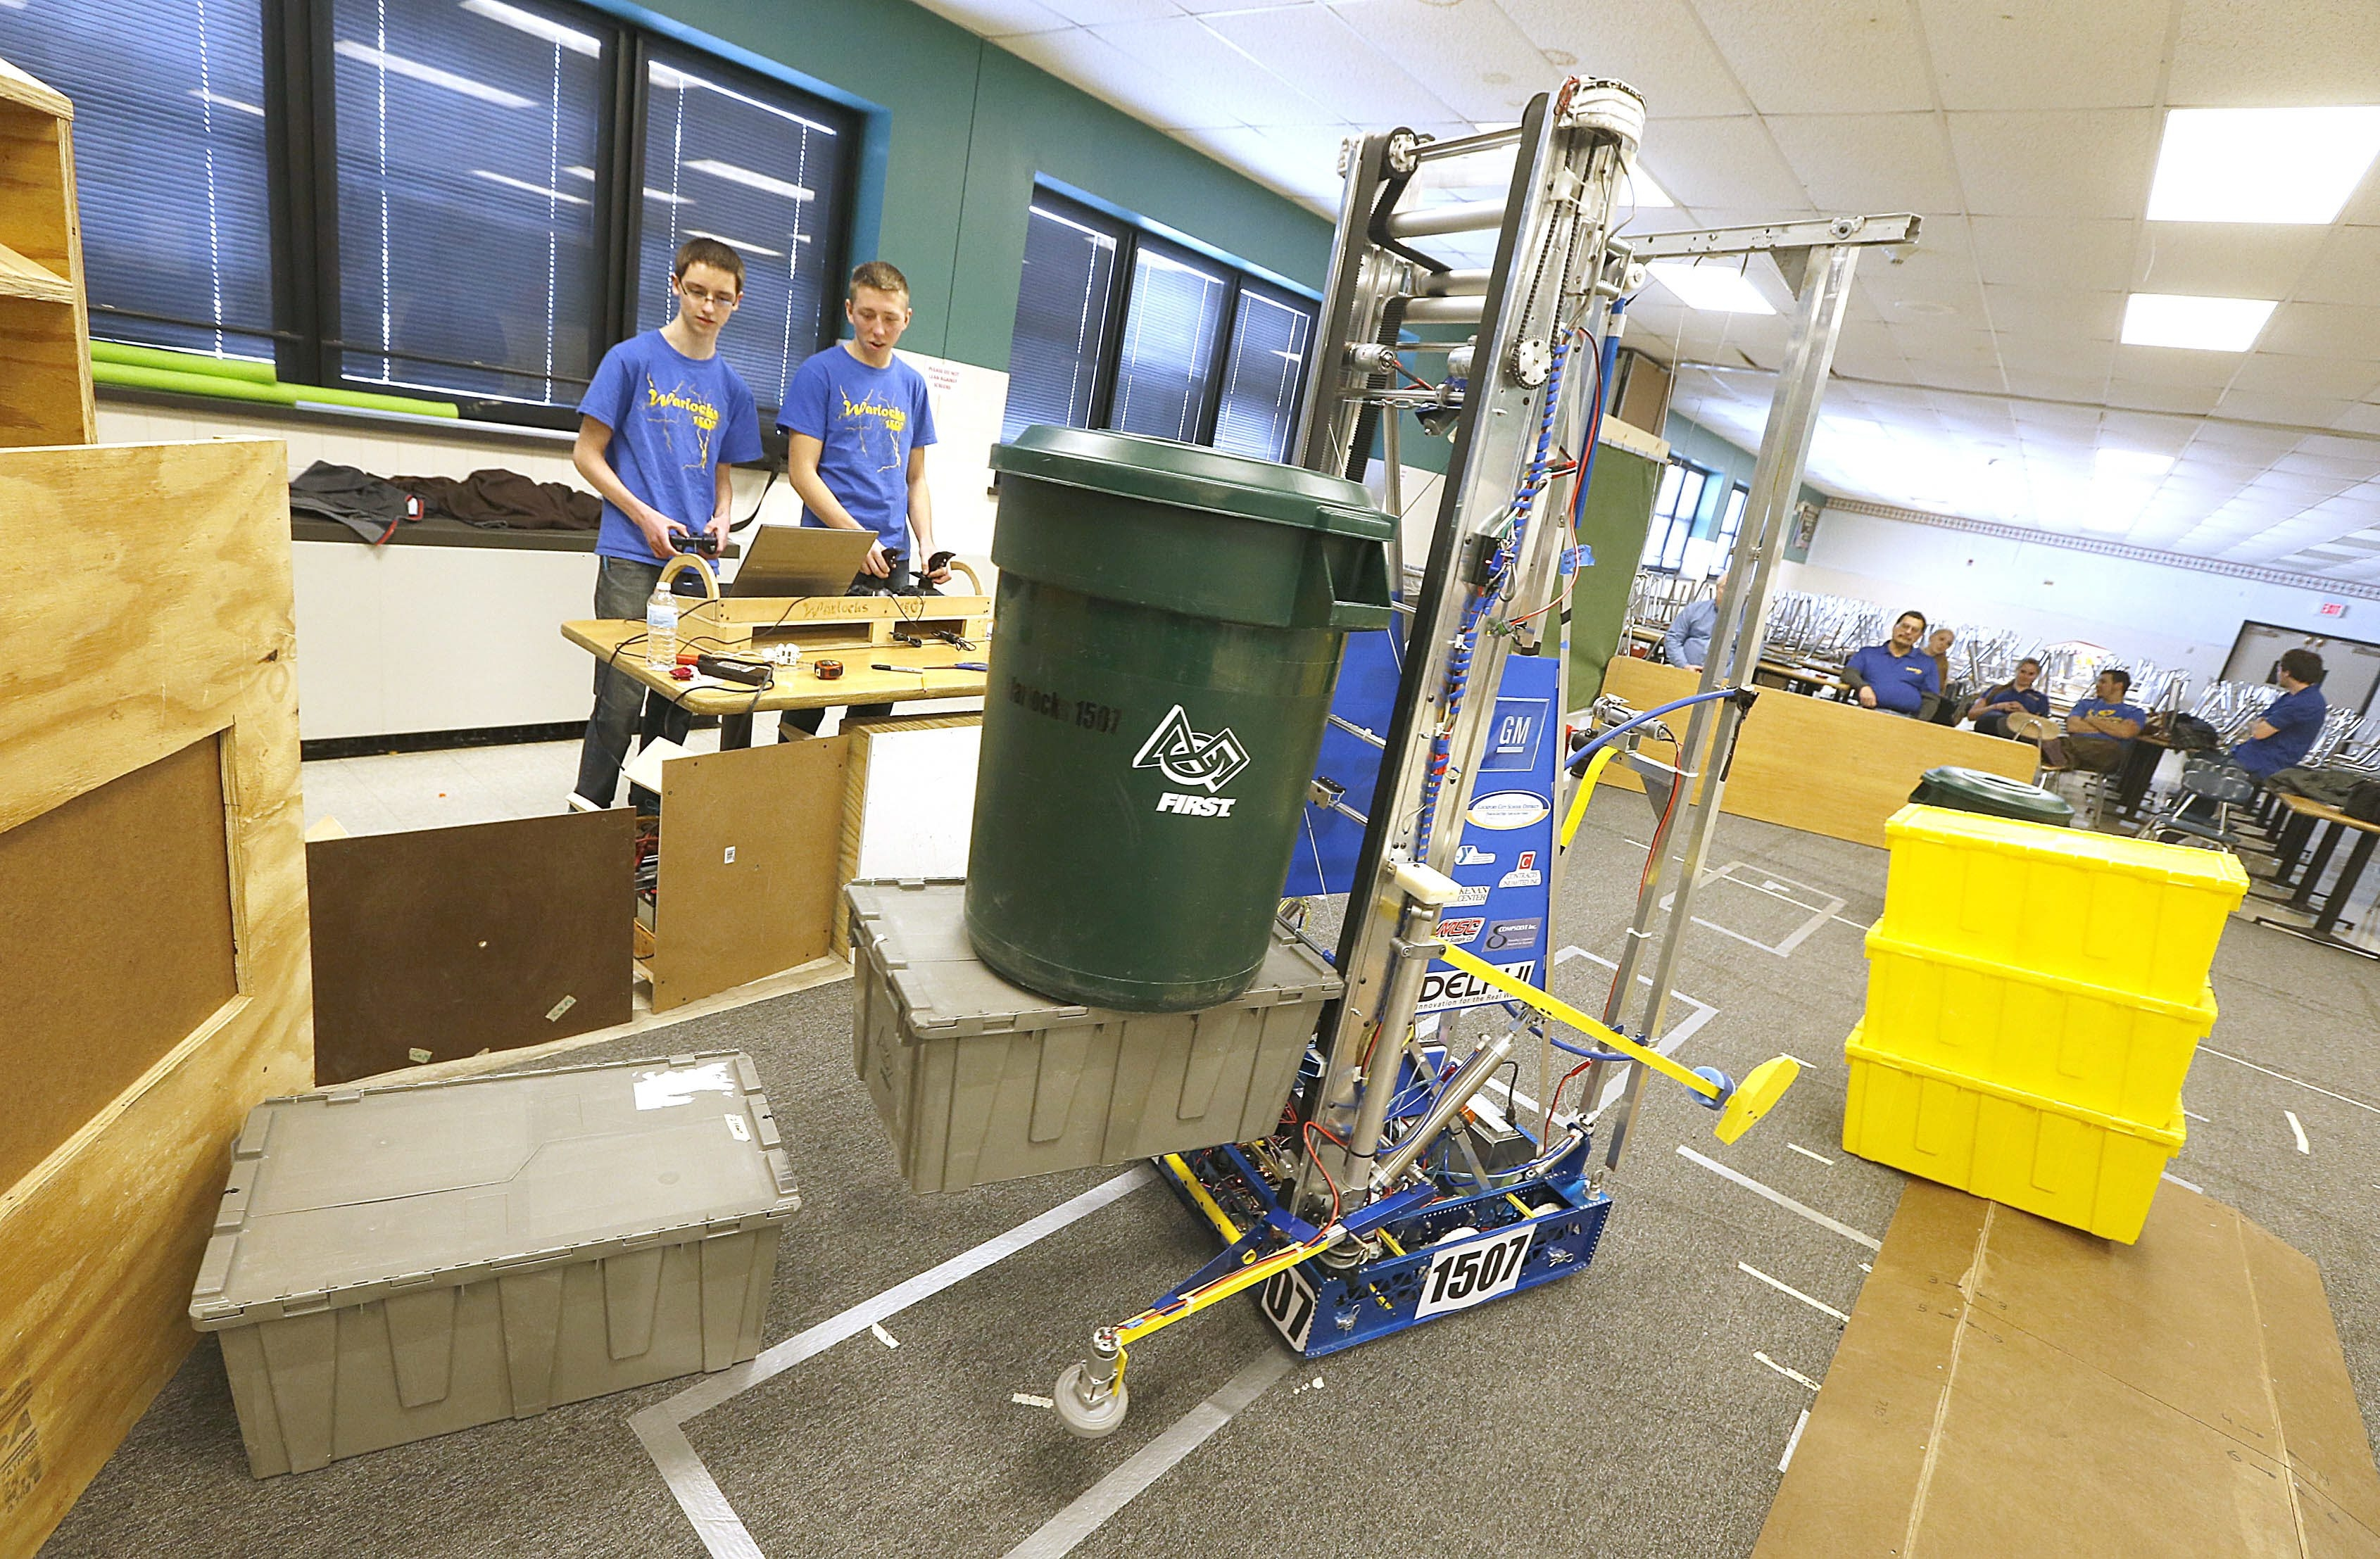 """Students, from left, Nick Brounscheidel and Ken Handley,  with the """"Totezilla"""" robot.  They are members of the Warlocks 1507 drive team in the Lockport High School cafeteria on Monday, Feb. 16, 2015."""